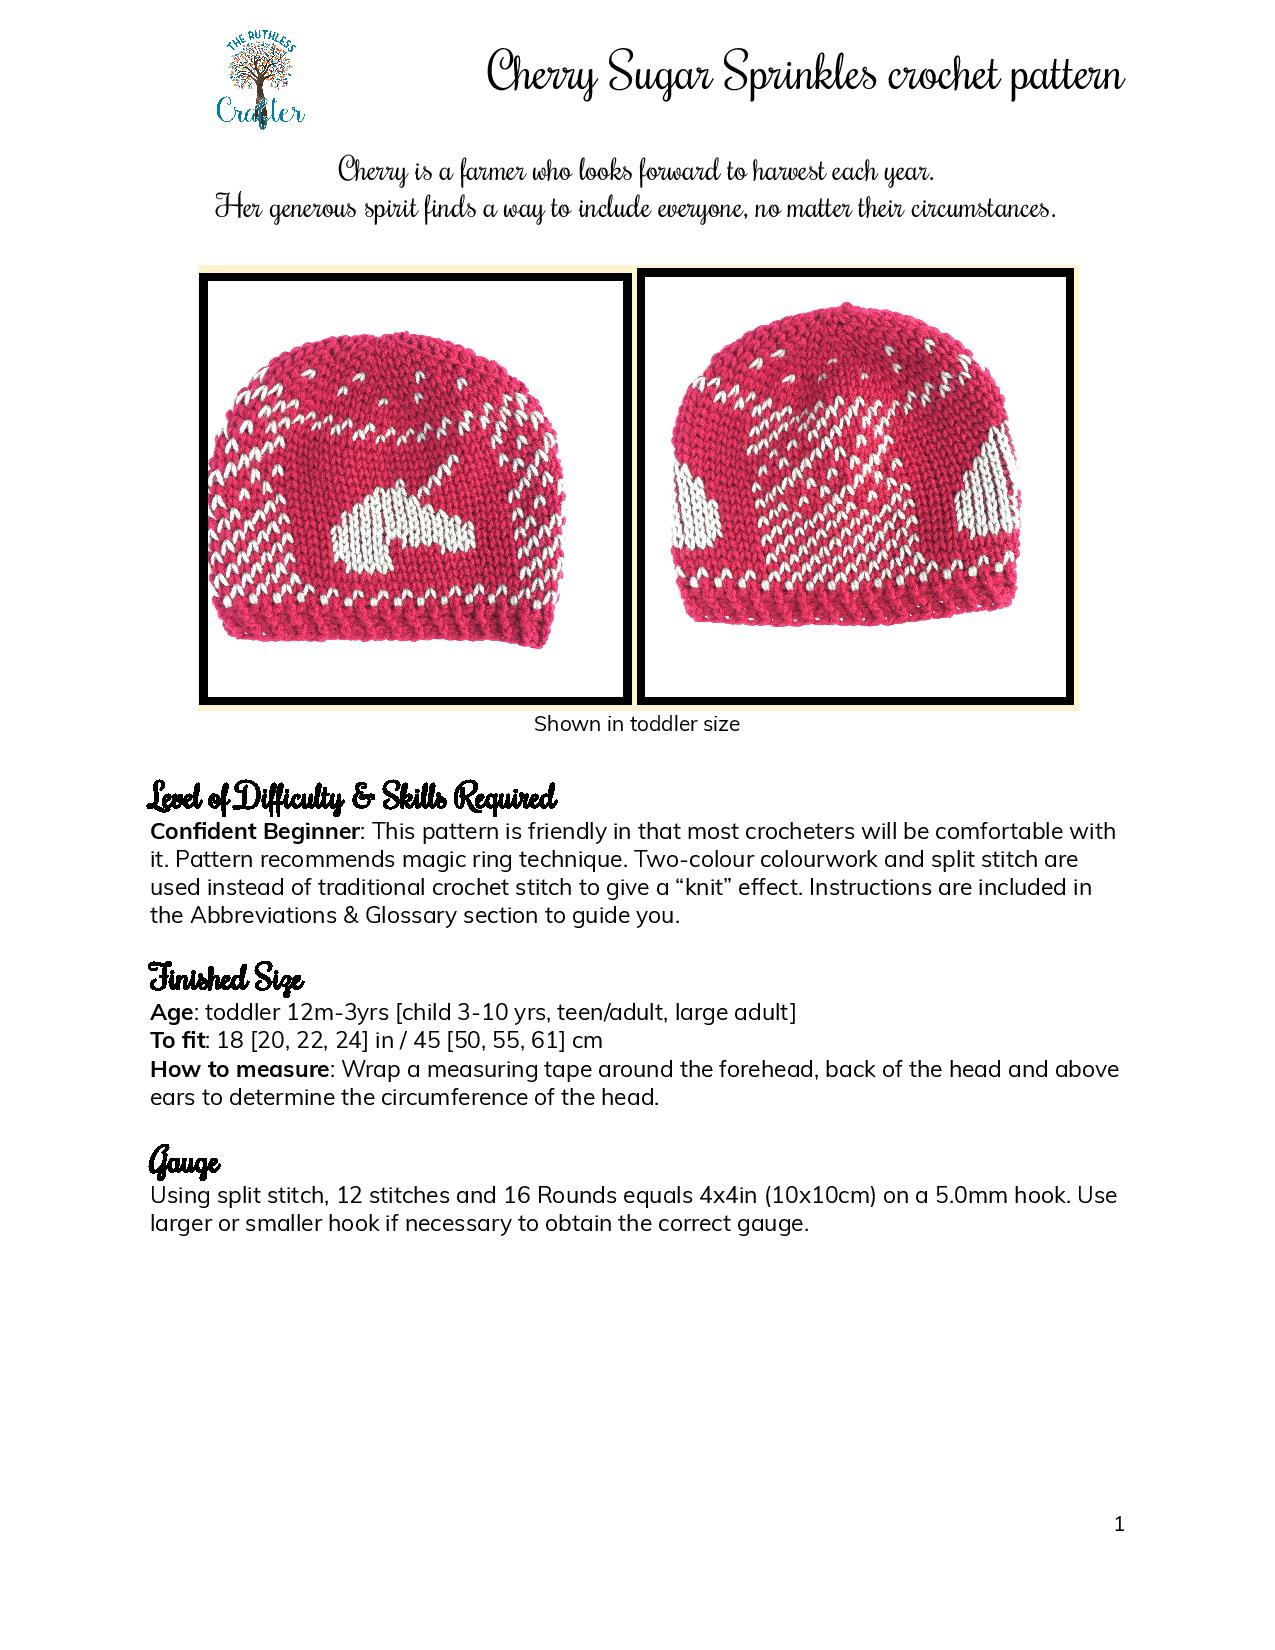 Cherry Sugar Sprinkles – crochet pattern page 1